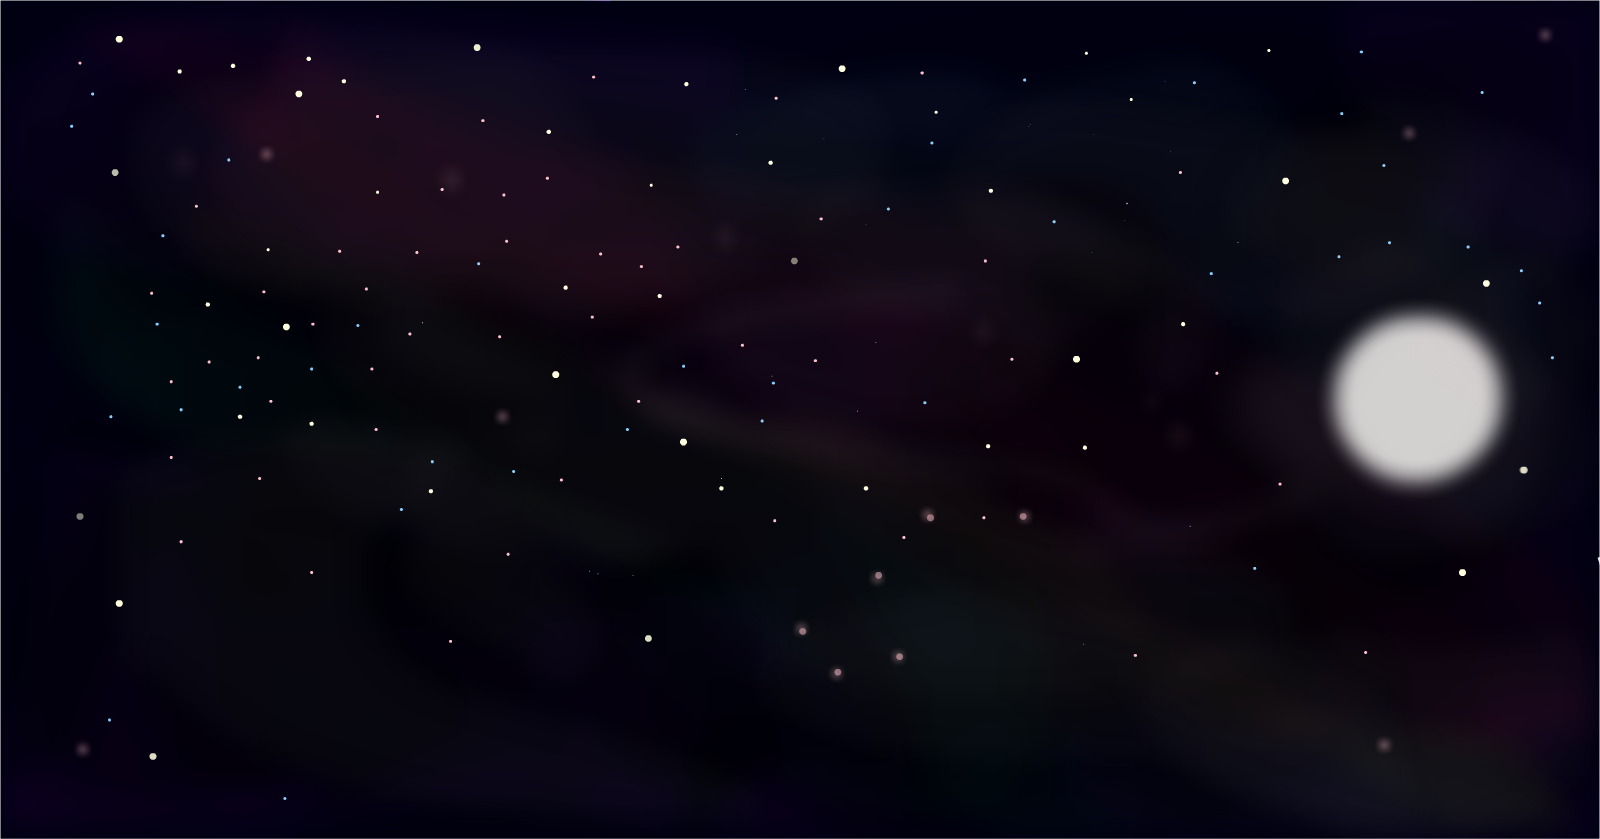 Drawn night sky » SketchPort one » Nightsky